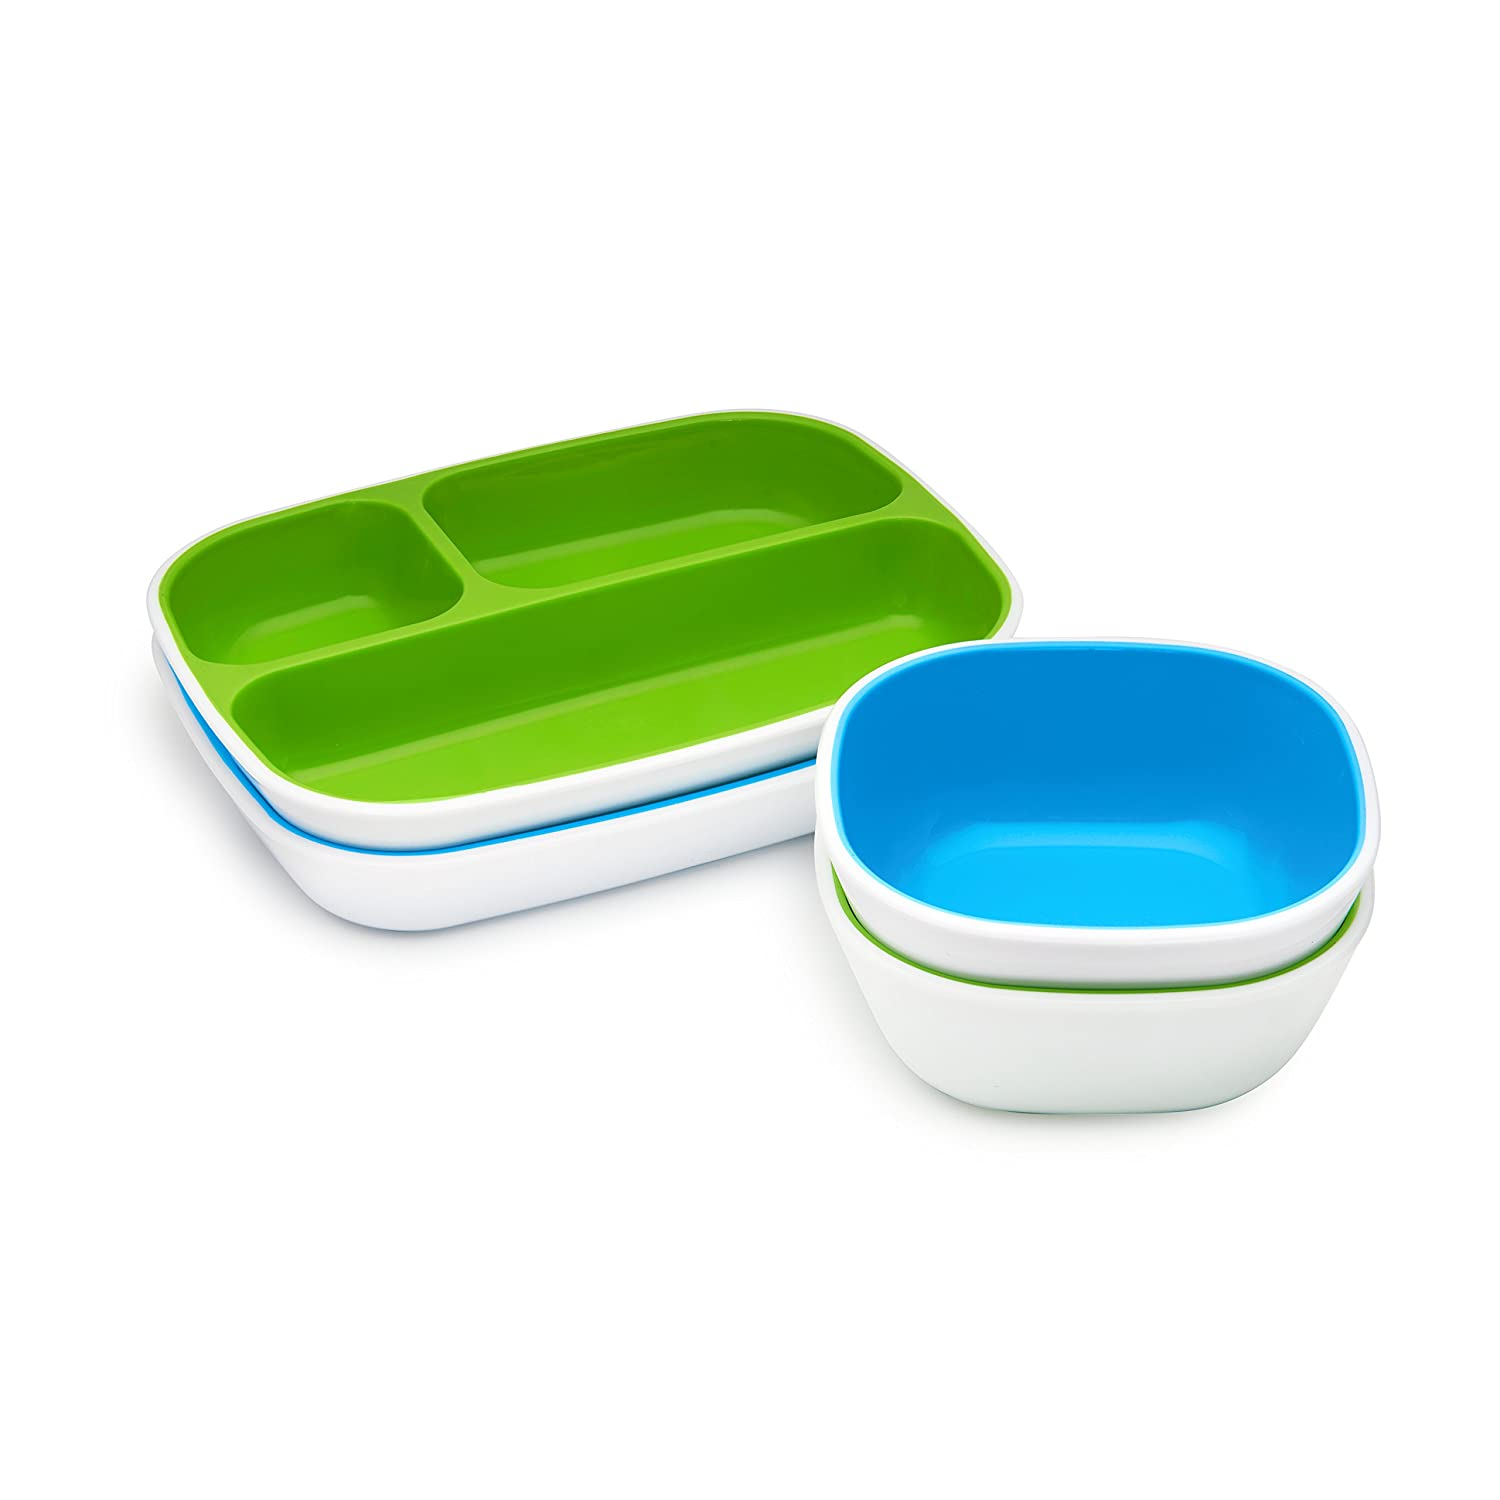 Munchkin Splash Toddler Divided Plate and Bowl Dining Set, Blue//Green, 4 Piece Inc. 27163